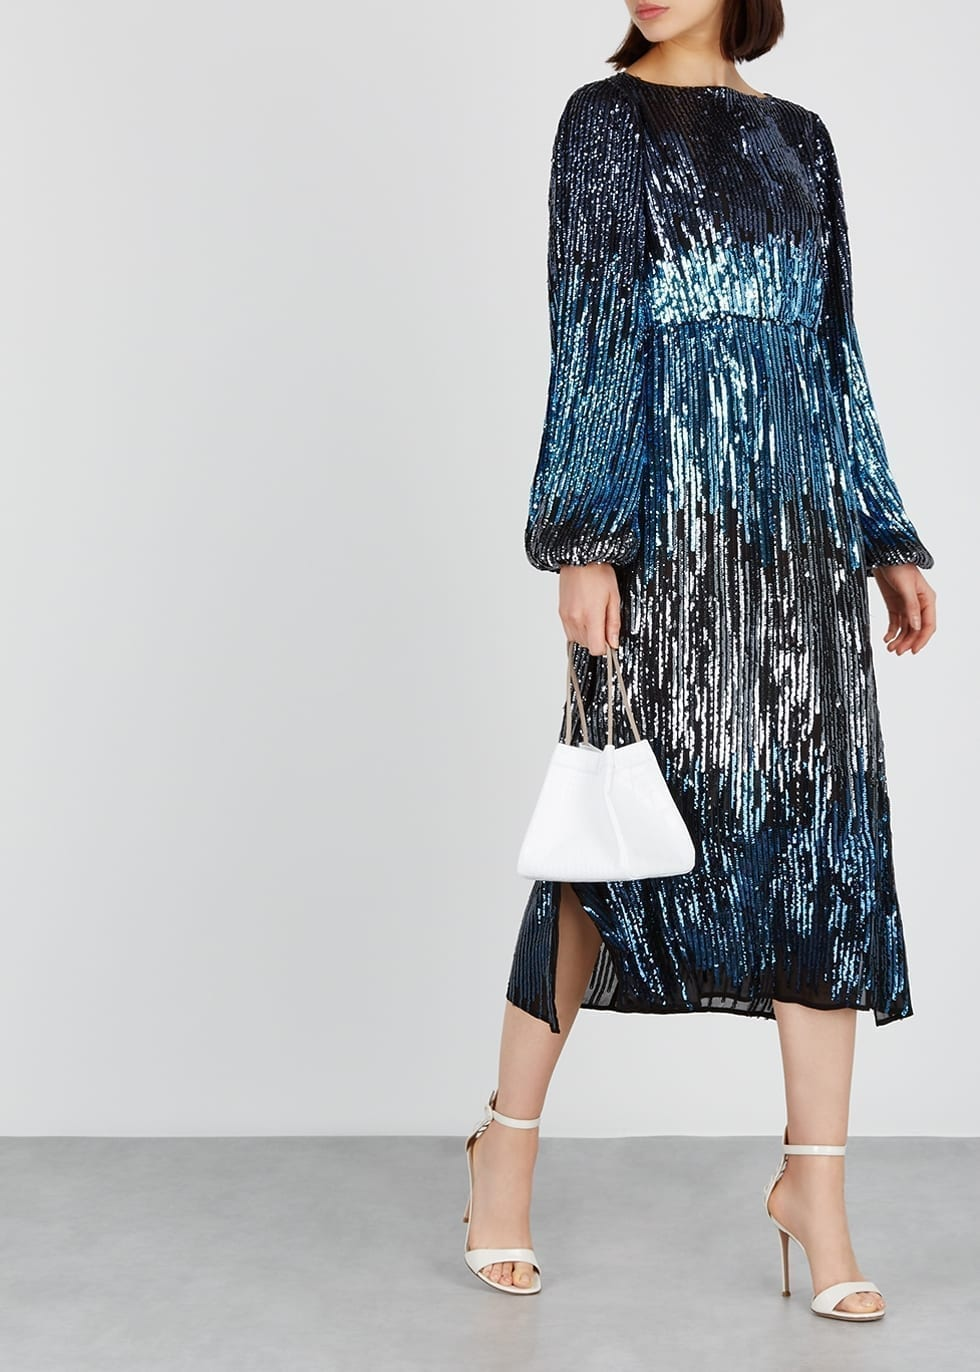 RIXO LONDON Coco Sequin-Embellished Blue Dress